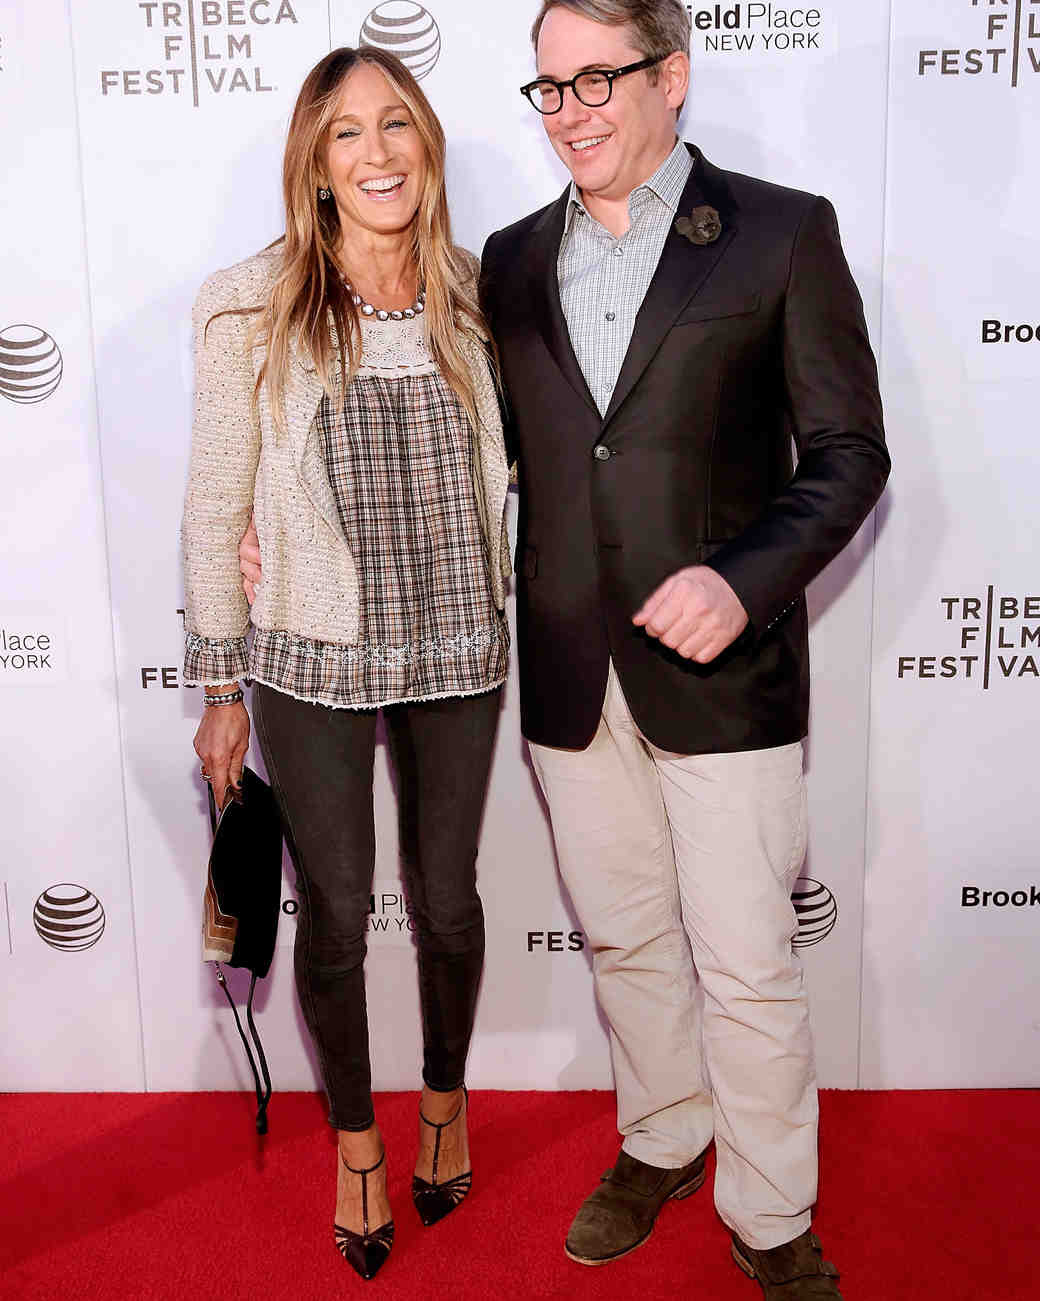 sjp-shoe-roundup-tribeca-film-festival-with-matthew-0515.jpg